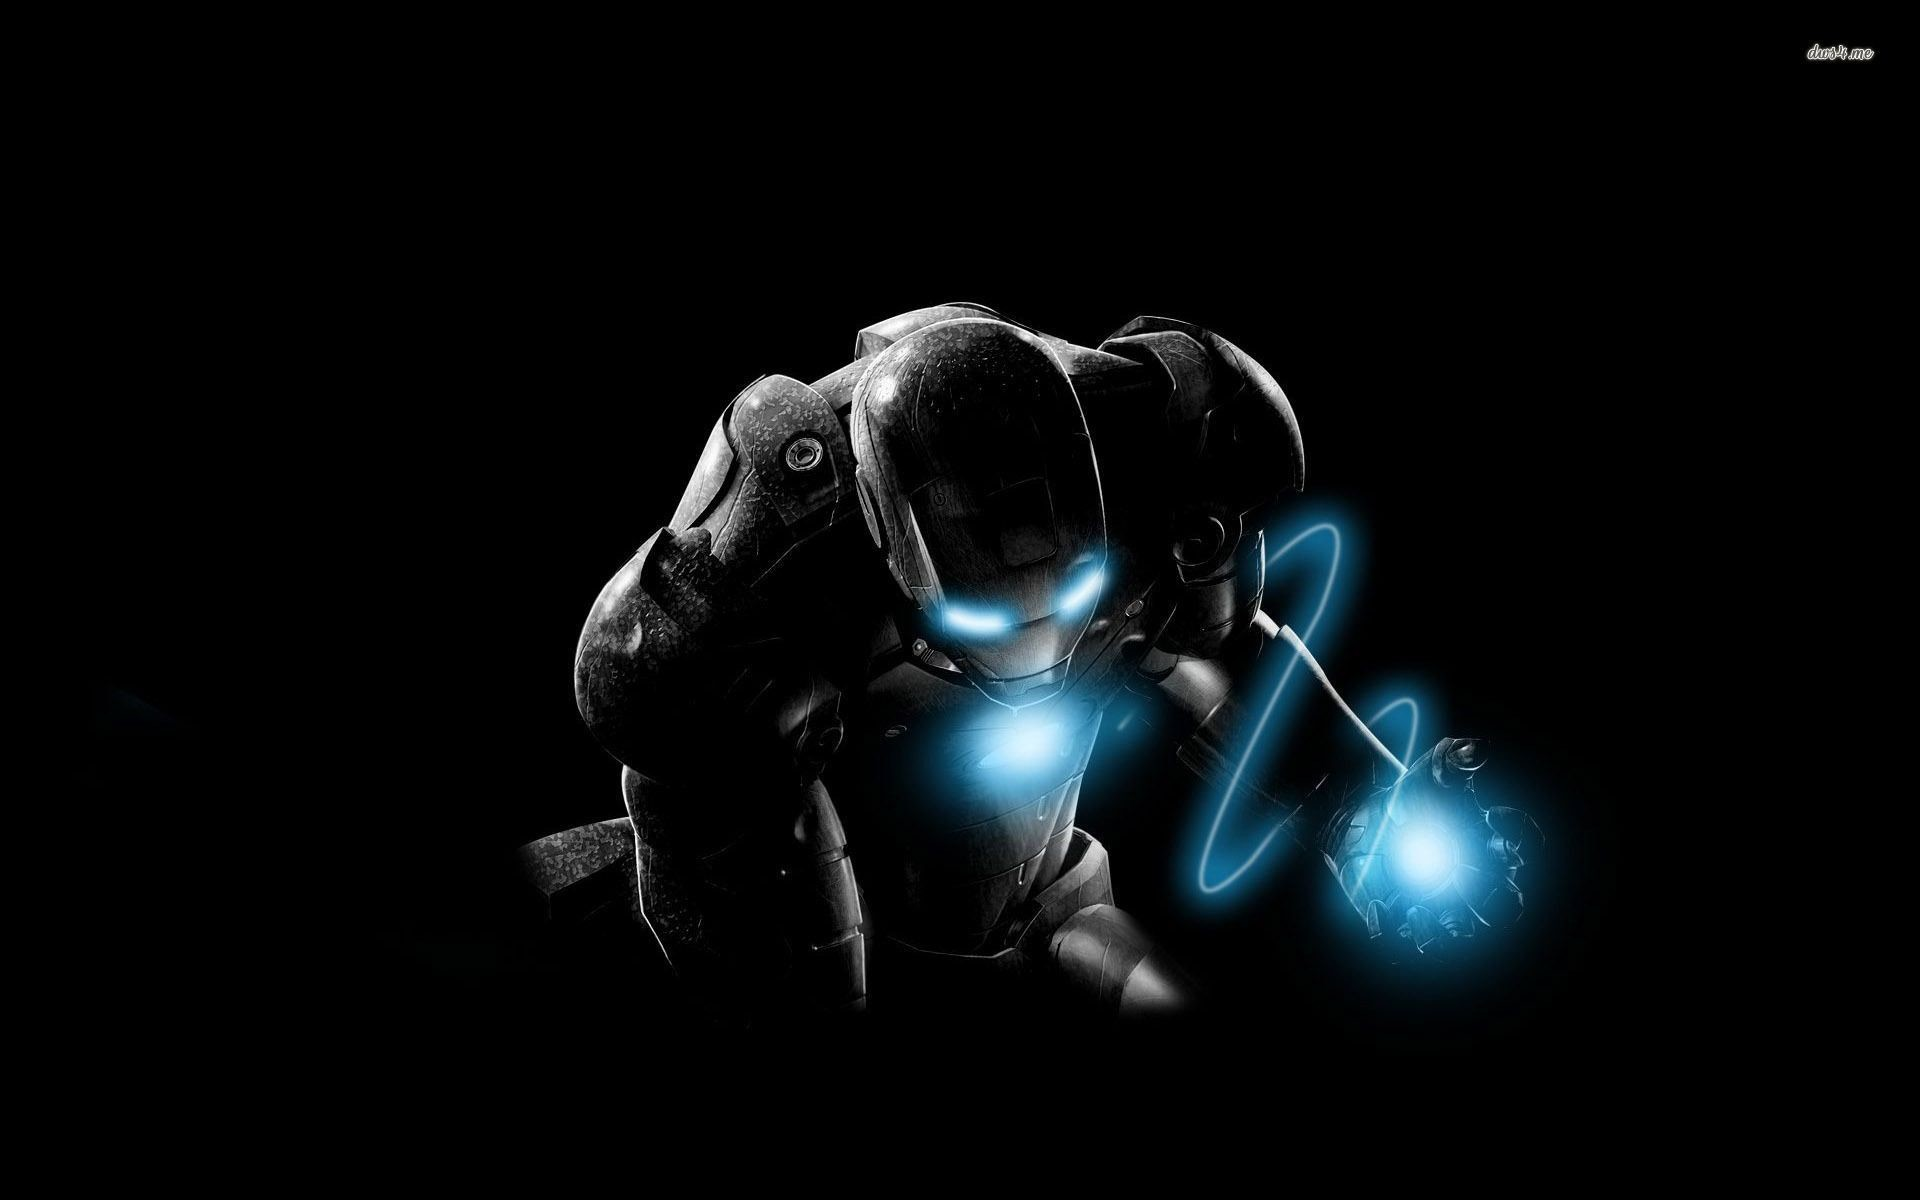 1920x1200 Image for Elegant Iron Man HD Wallpaper